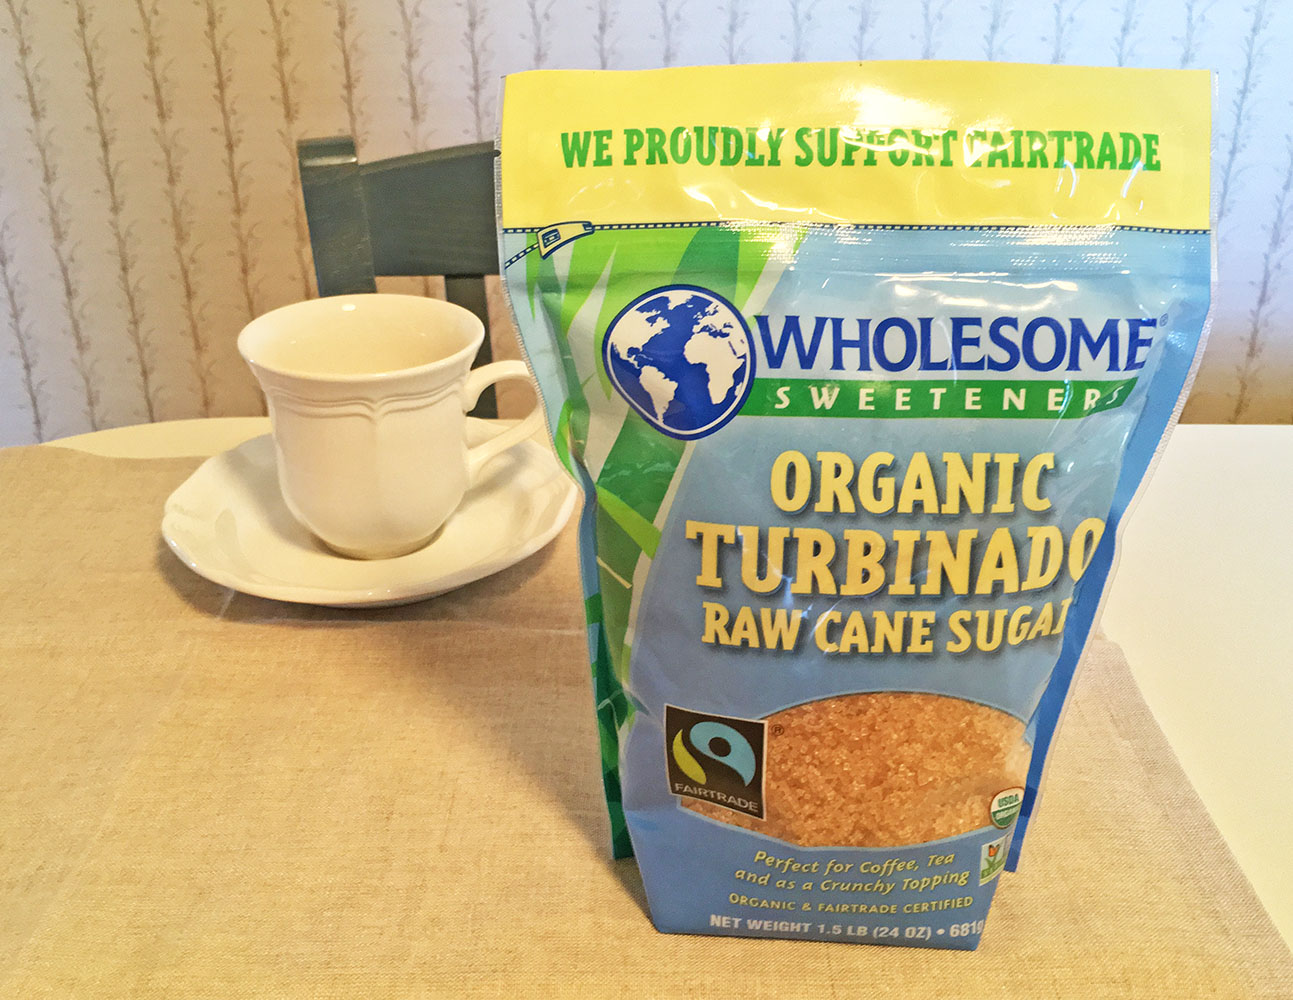 Wholesome Sweeteners Organic Turbinado Raw Cane Sugar